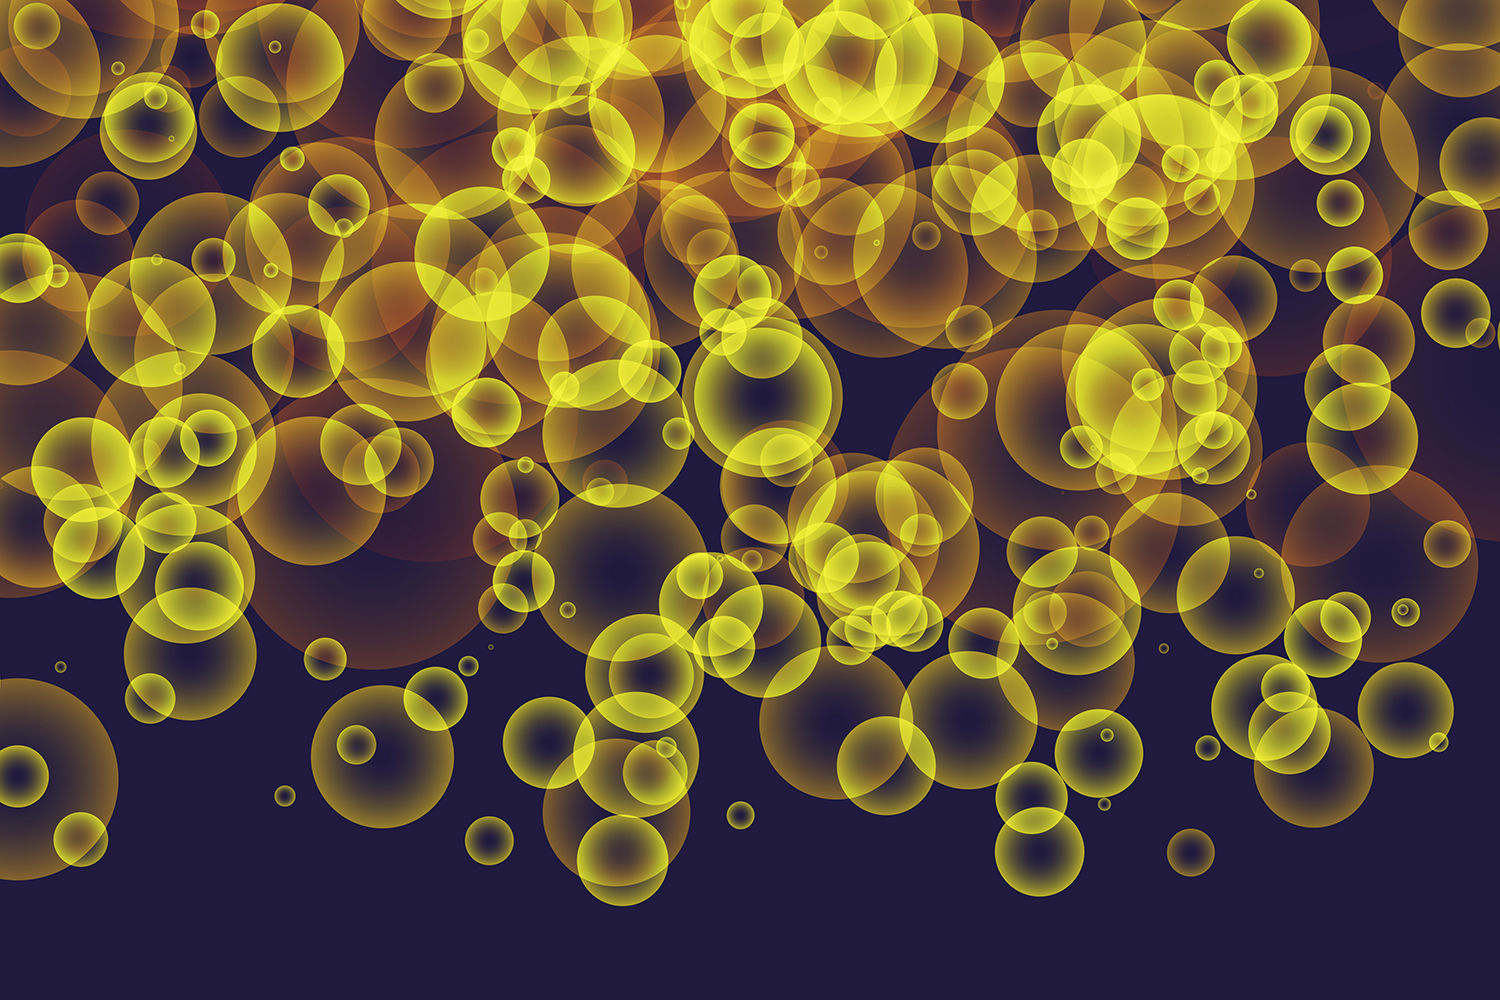 47 Bubbles Backgrounds example image 5